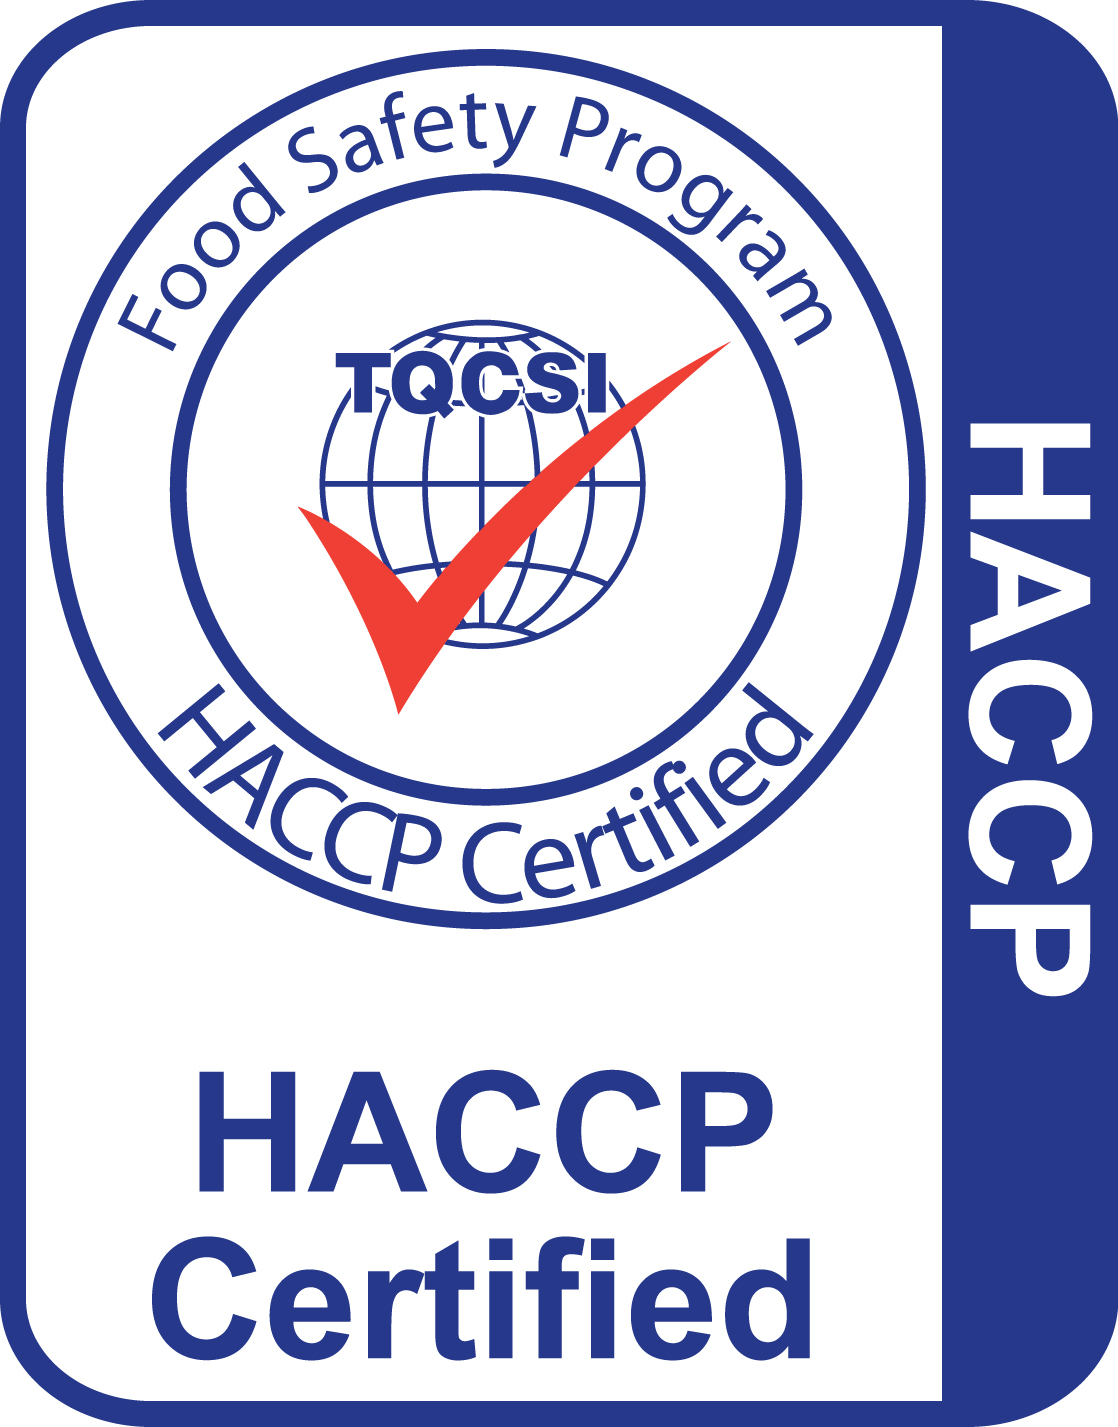 HACCP �C Food Safety Program